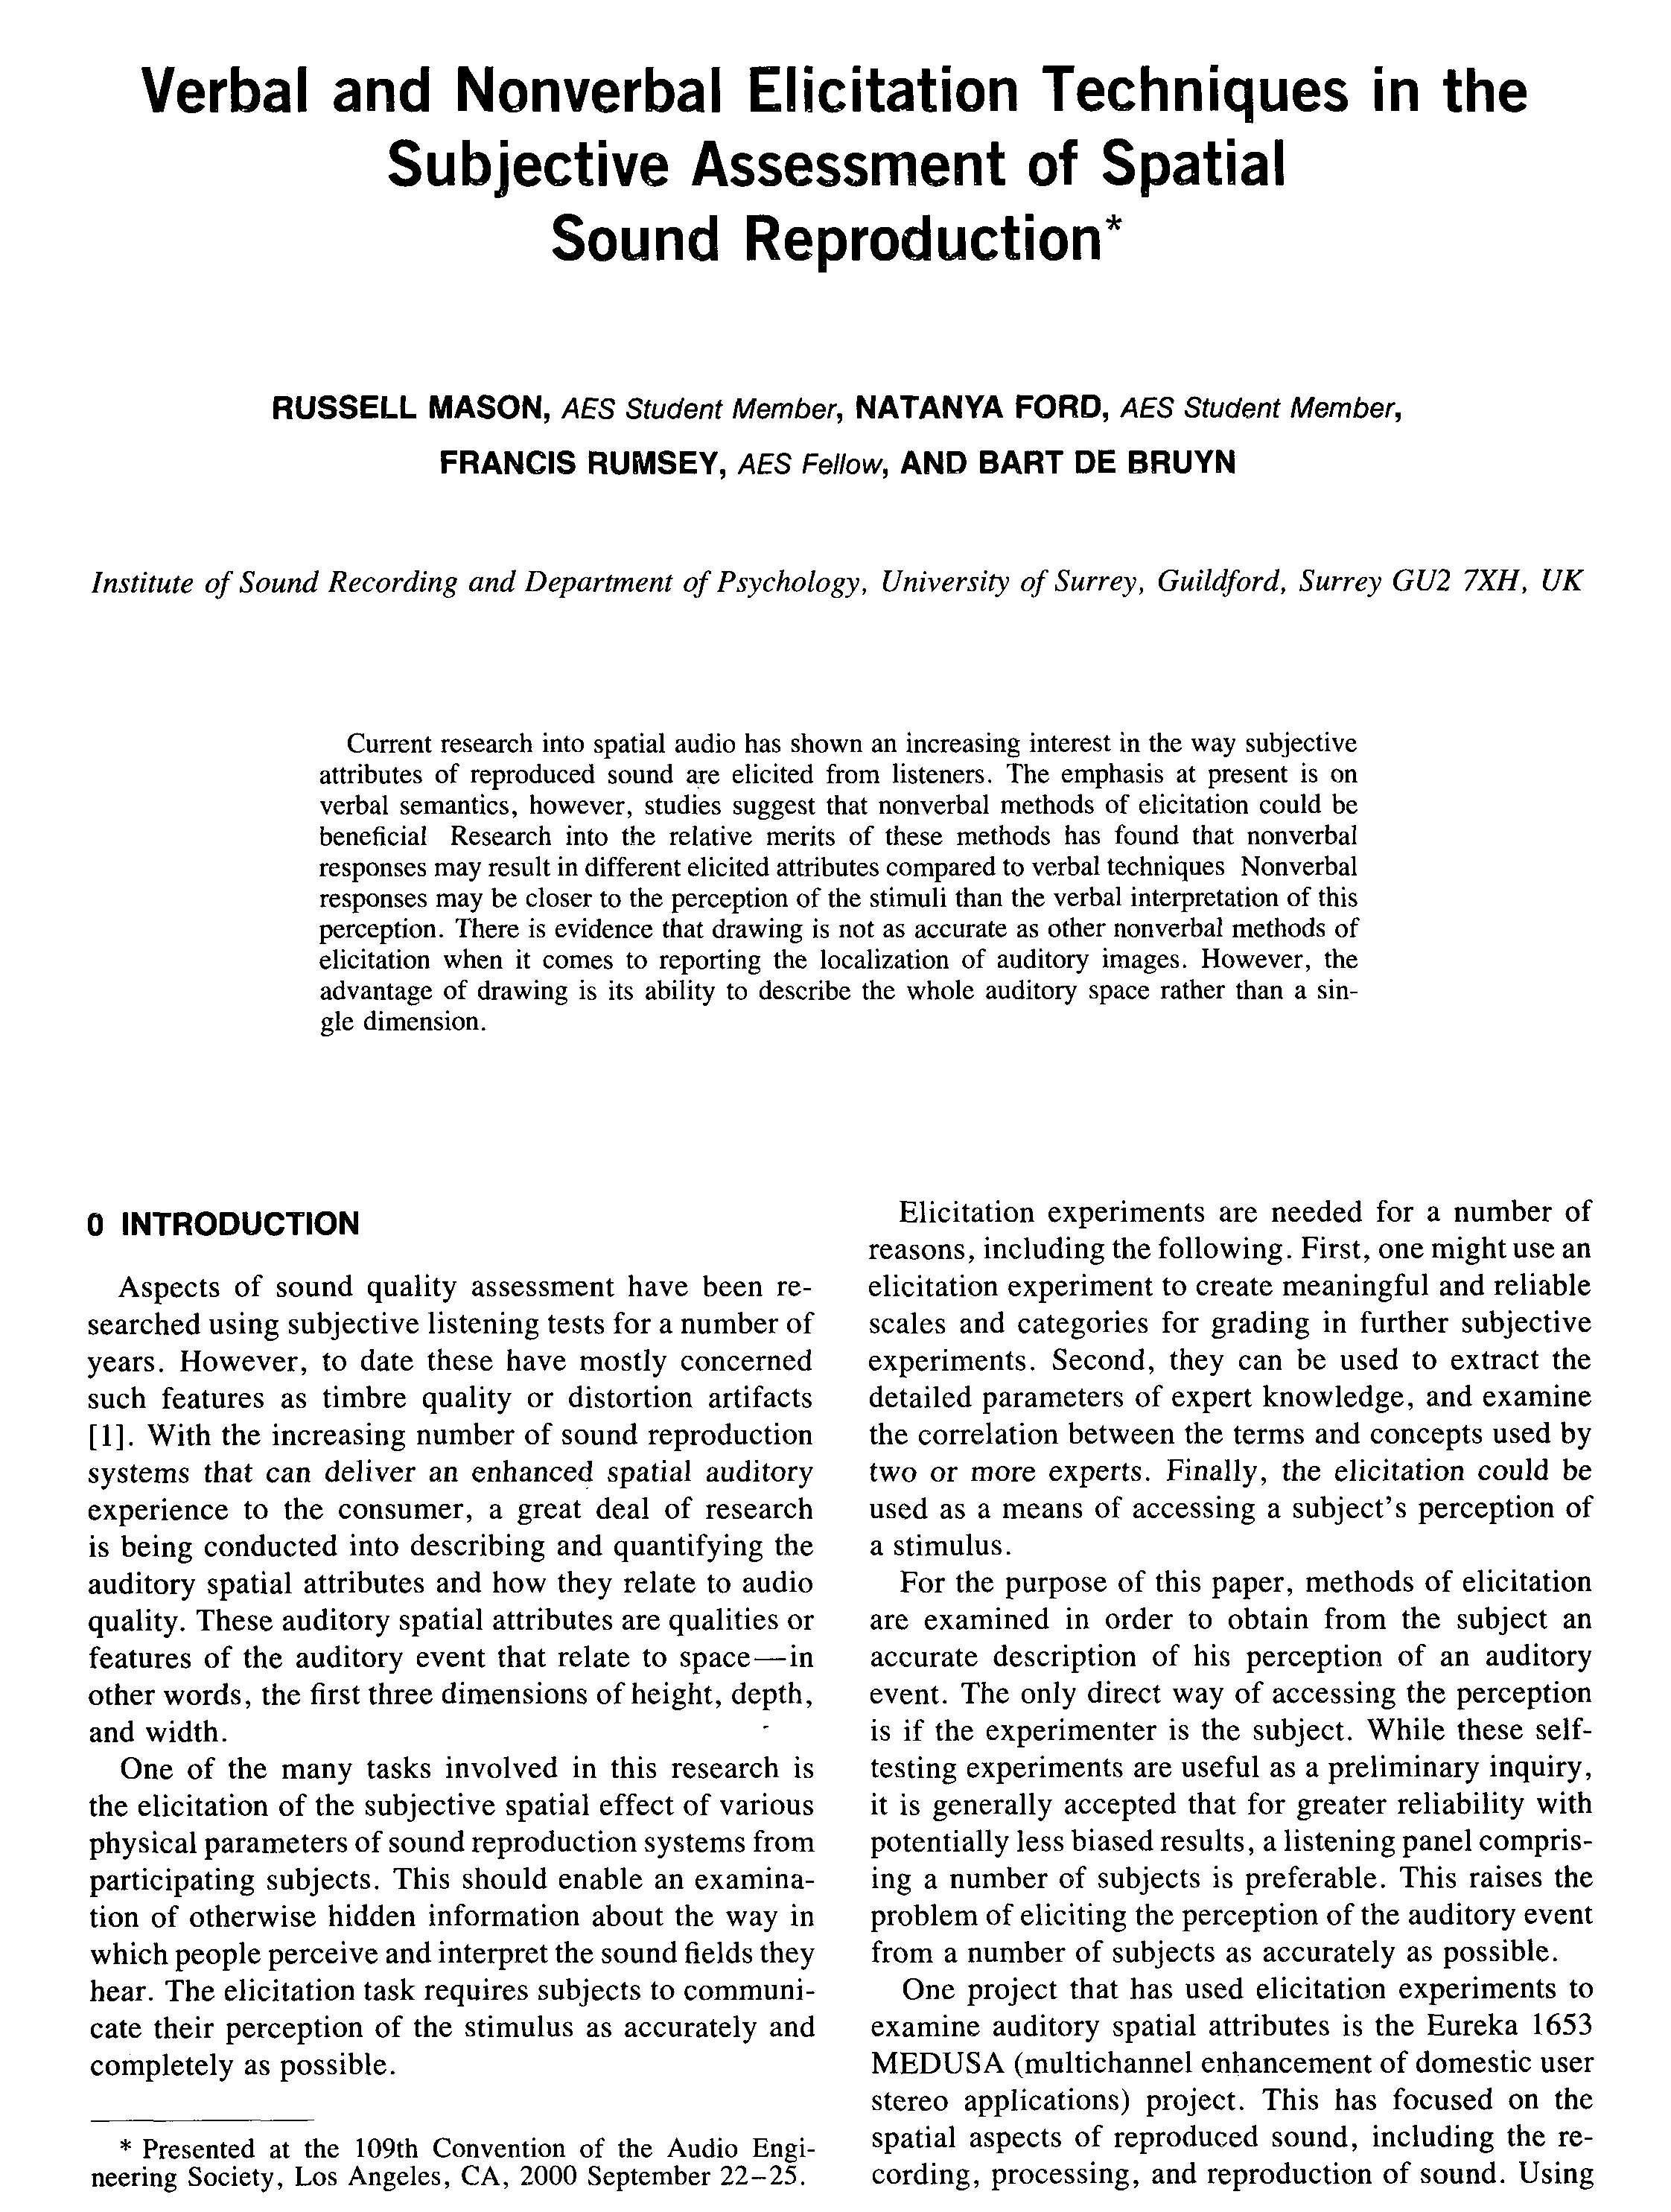 aes e library verbal and nonverbal elicitation techniques in the subjective assessment of spatial sound reproduction